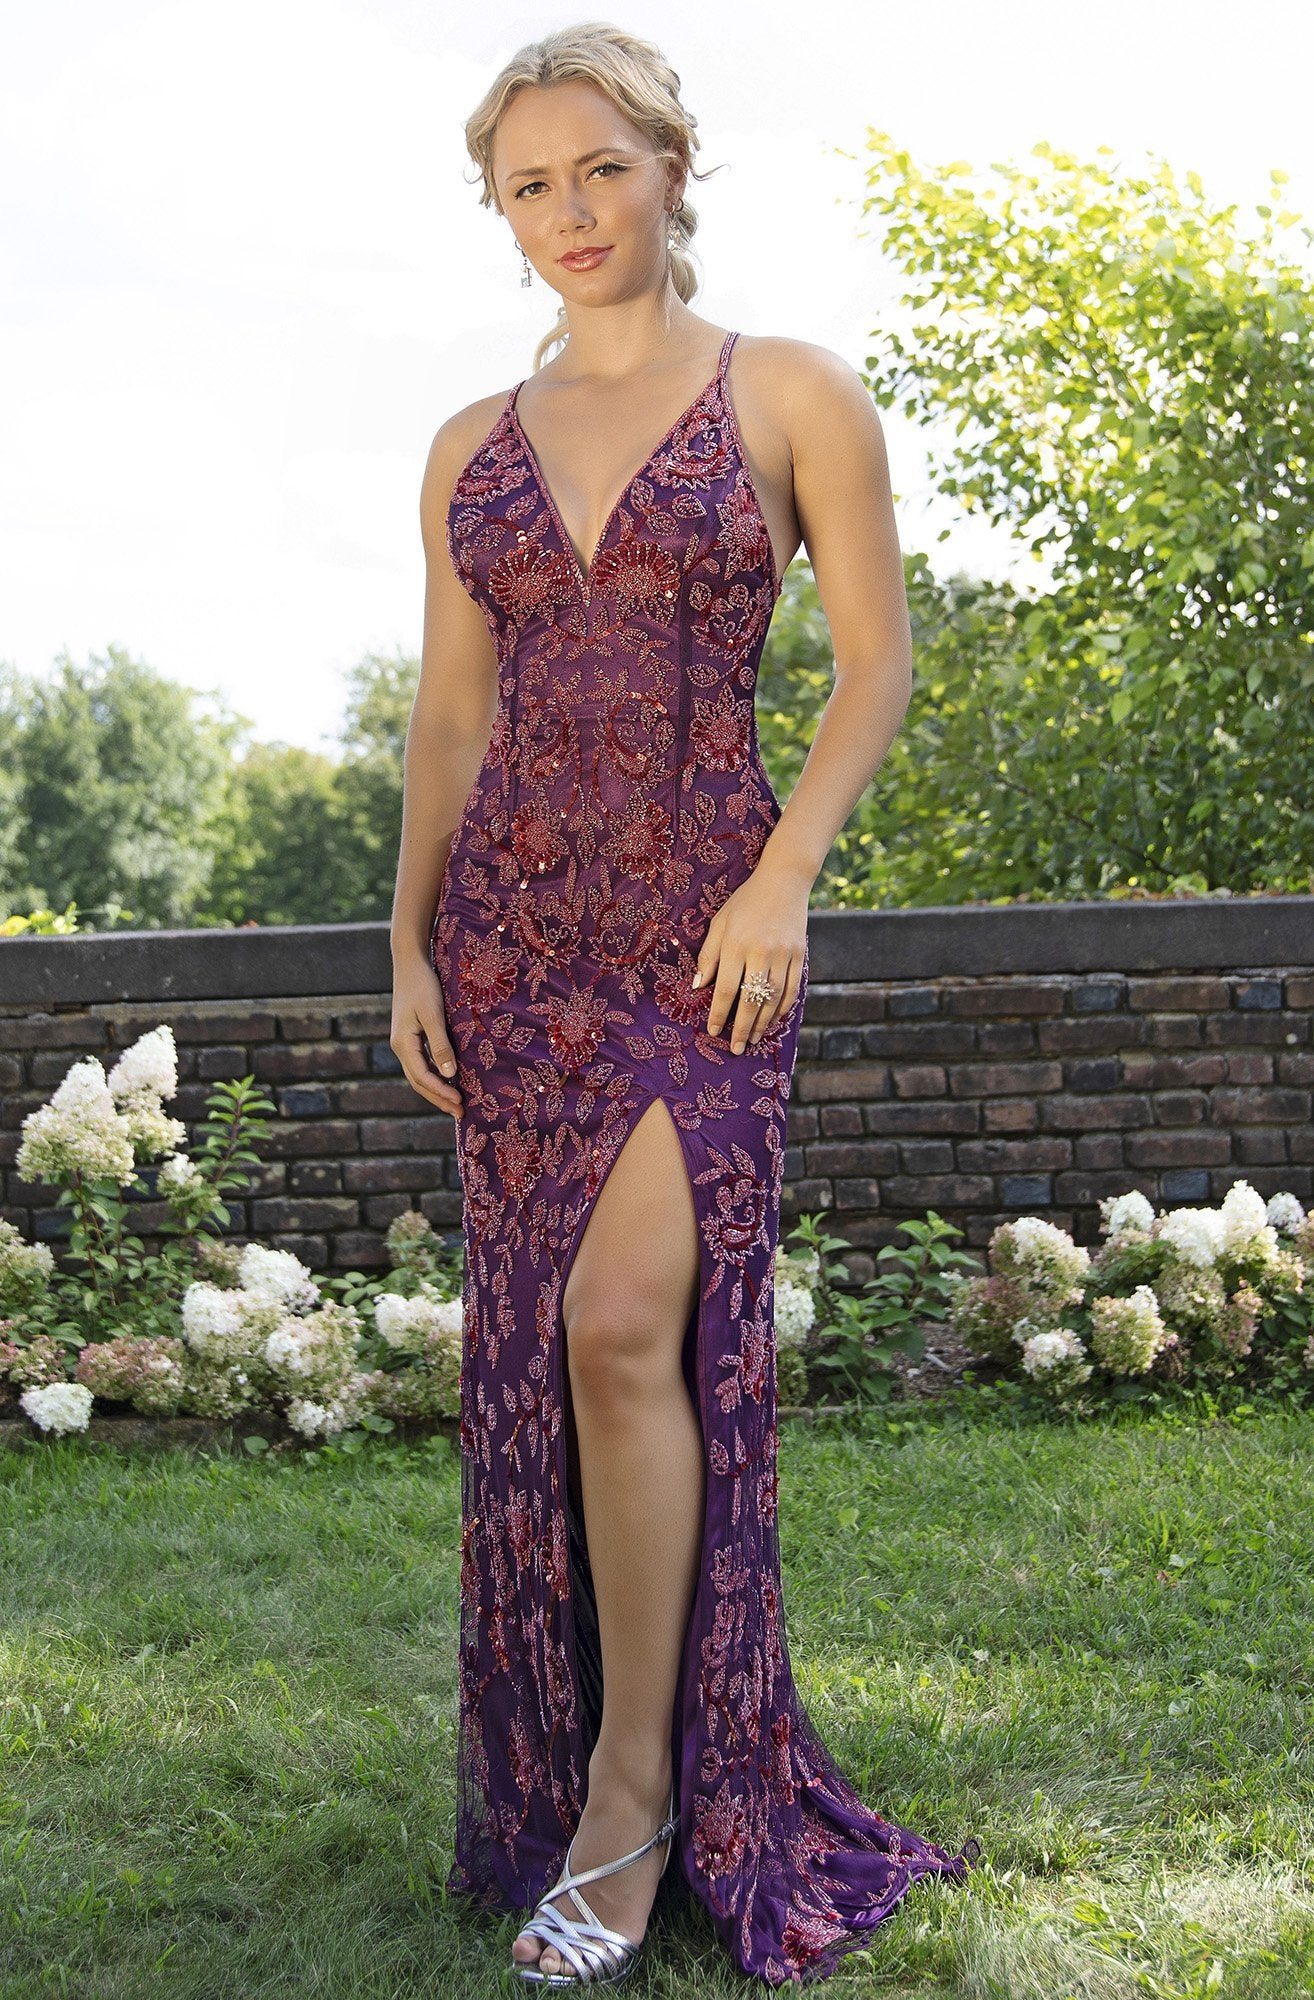 Primavera Couture - 3259 Stylistic Floral Beaded High Slit Gown In Purple